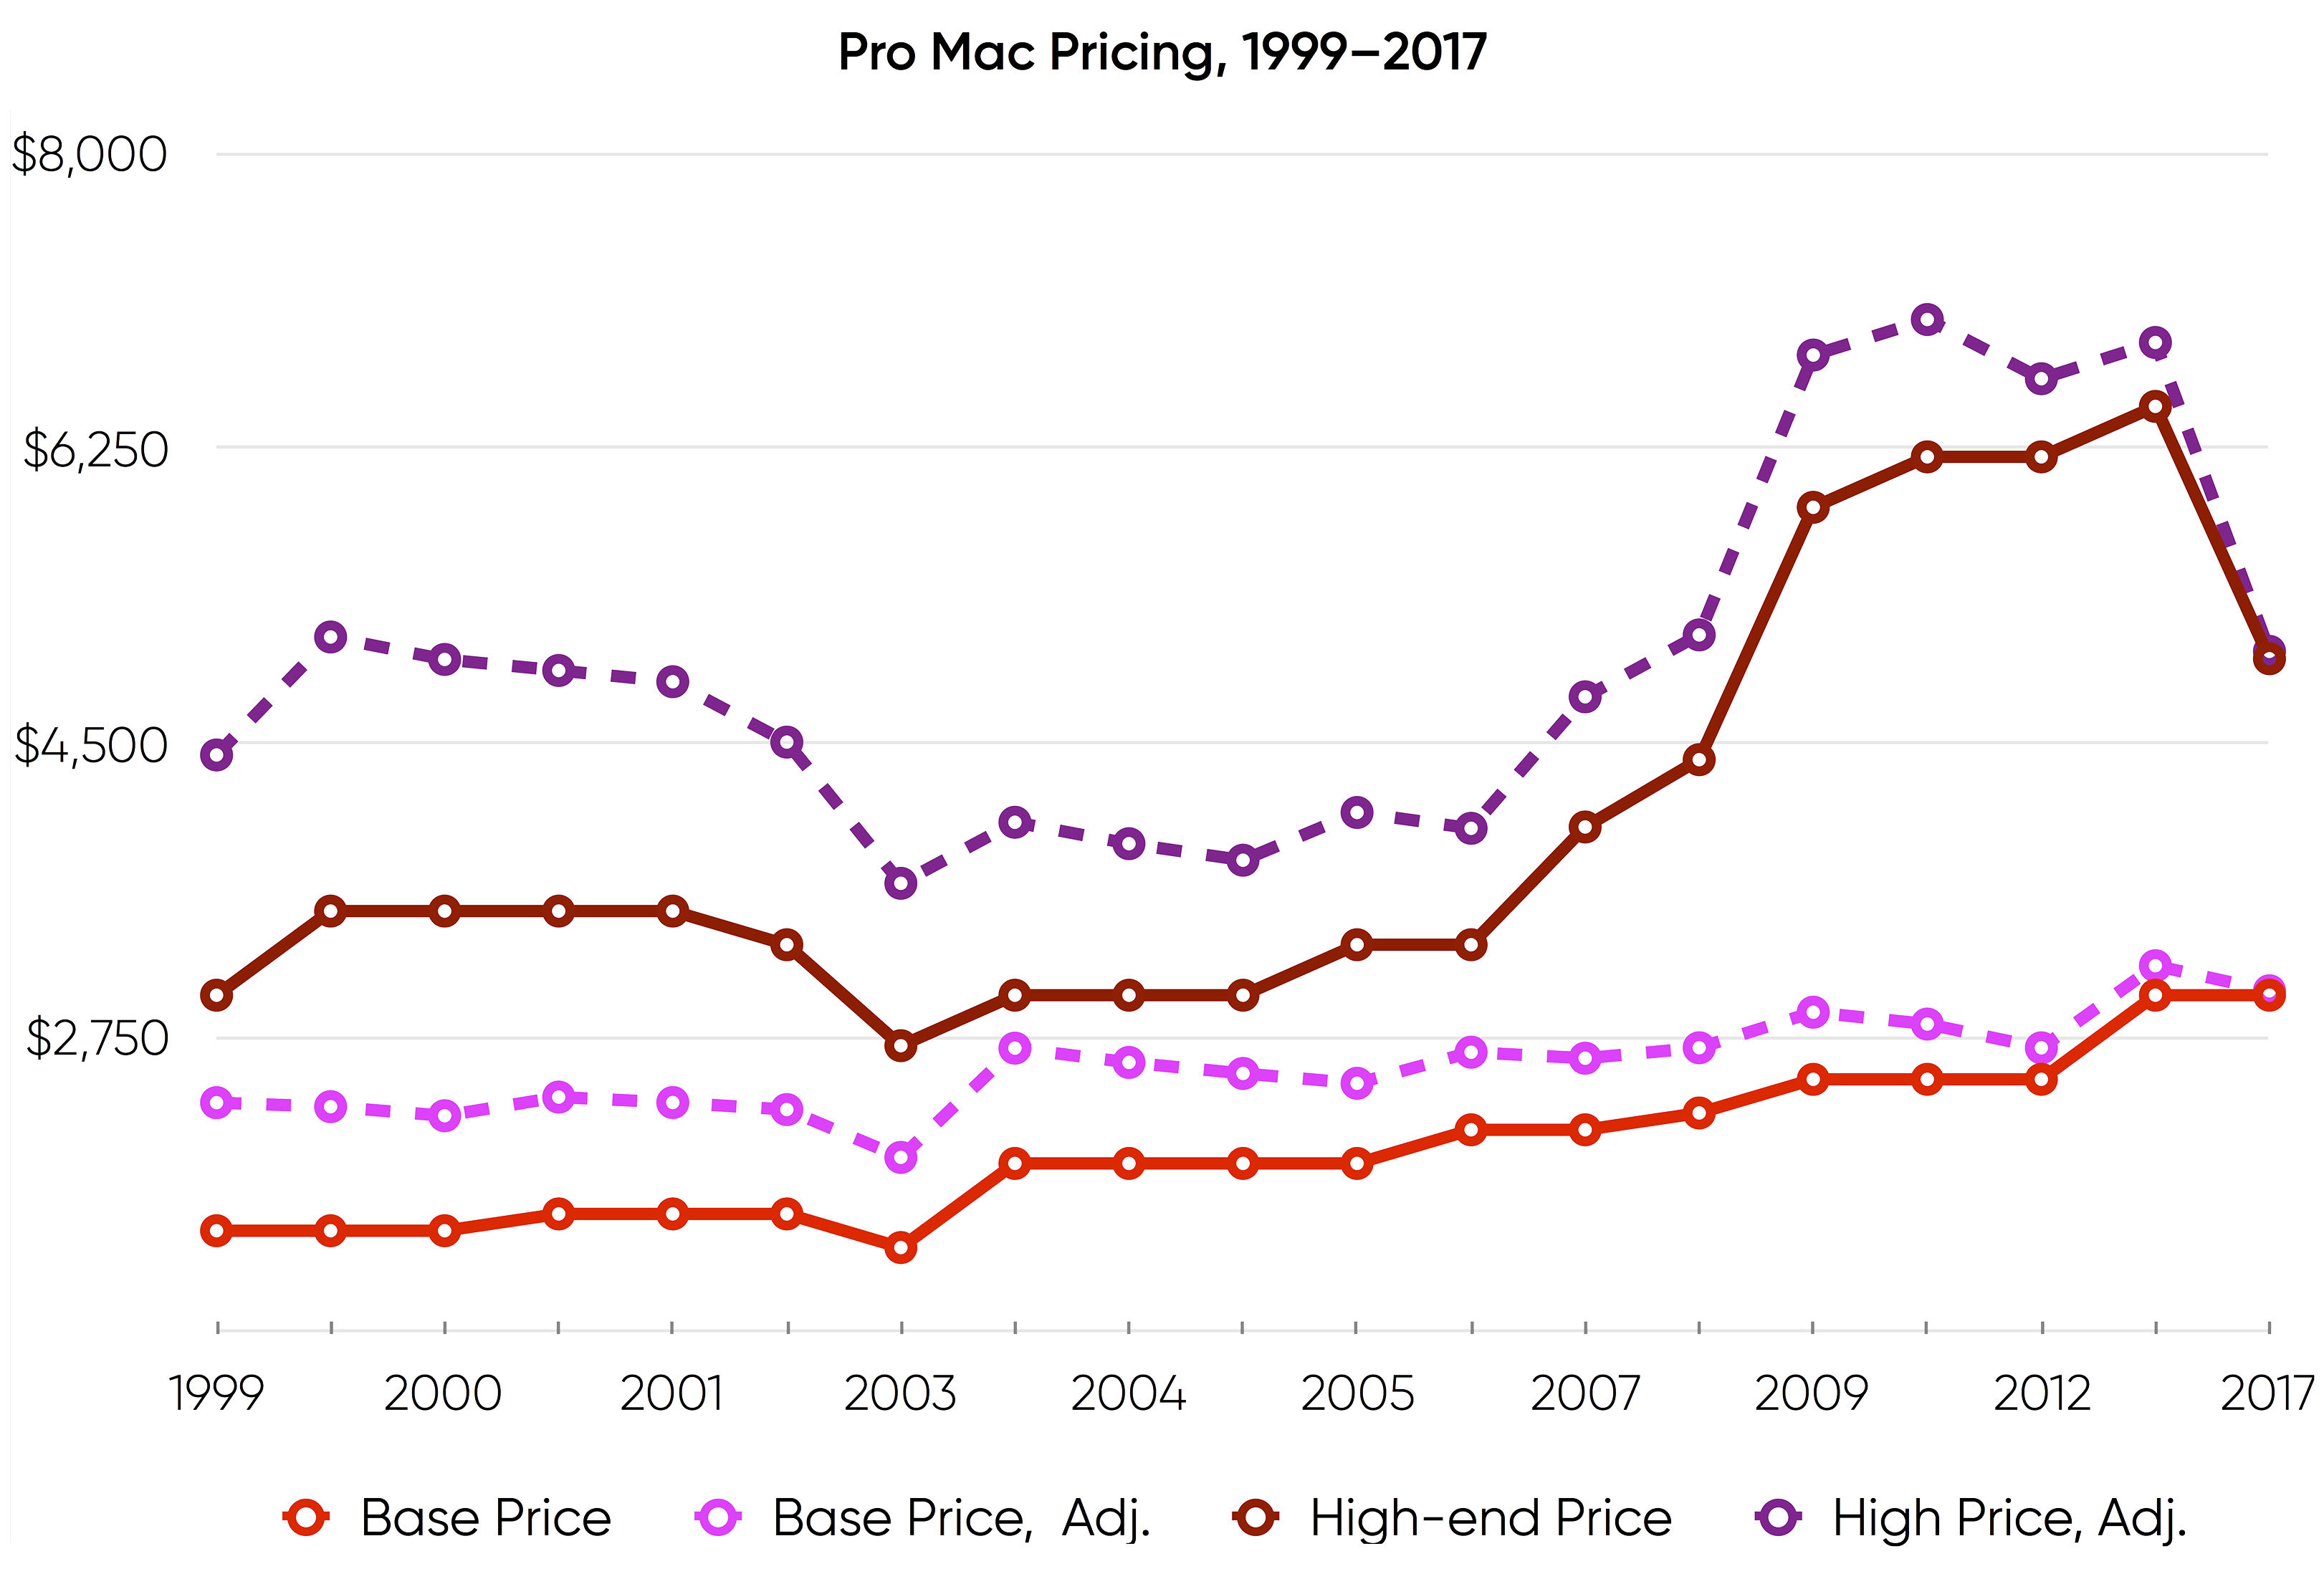 Pro desktop Mac prices 1999-2017